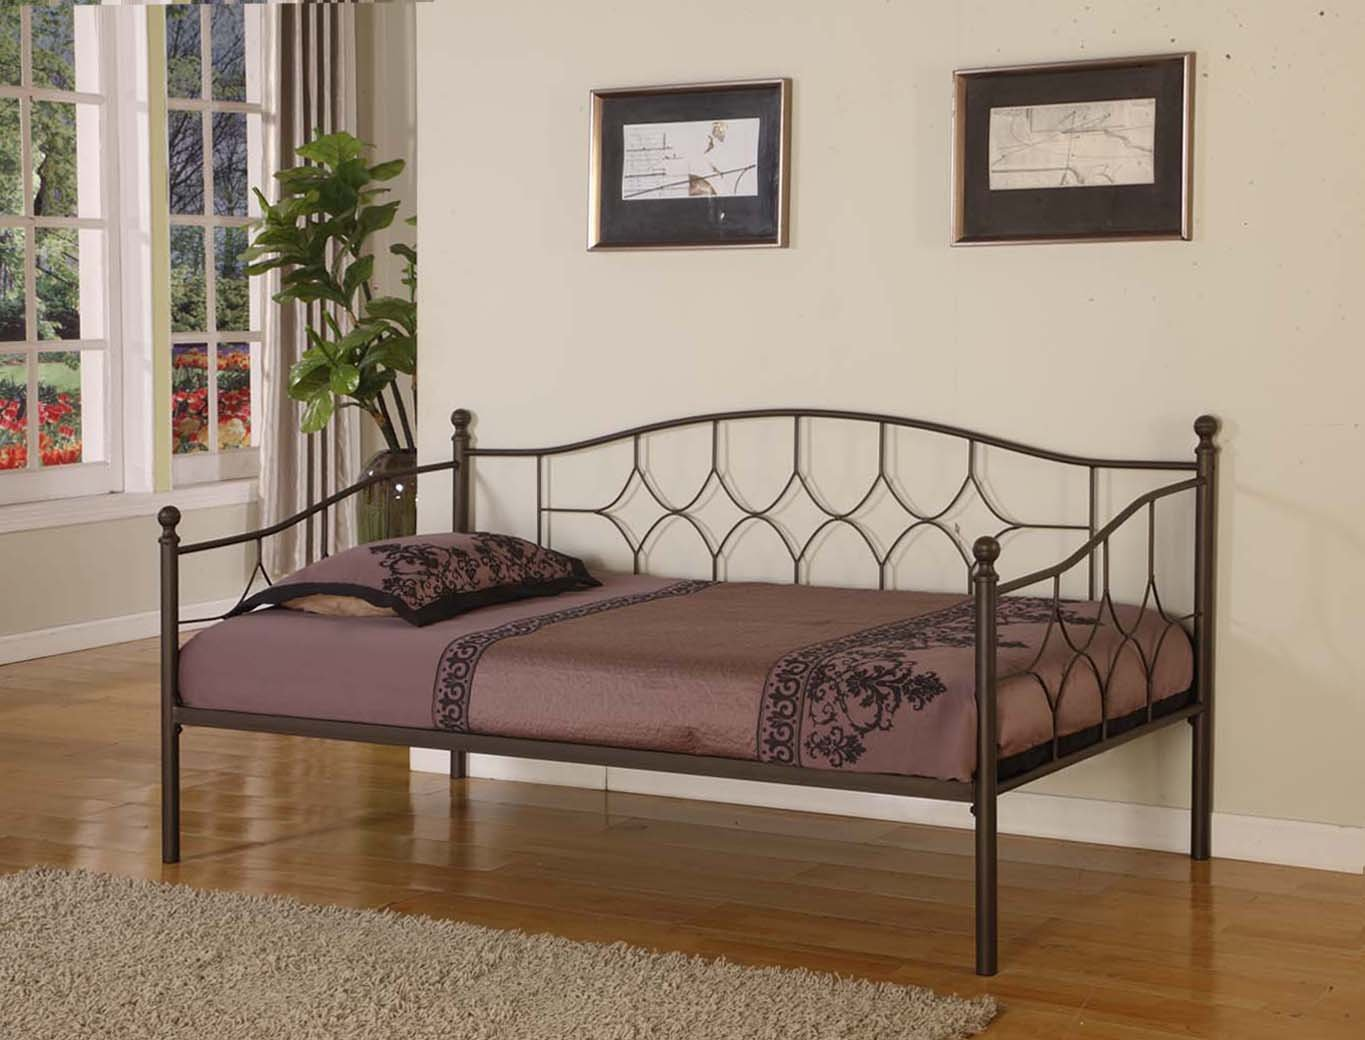 Pewter Finish Metal Twin Size Day Bed (Daybed) Frame With Metal Slats ~New~